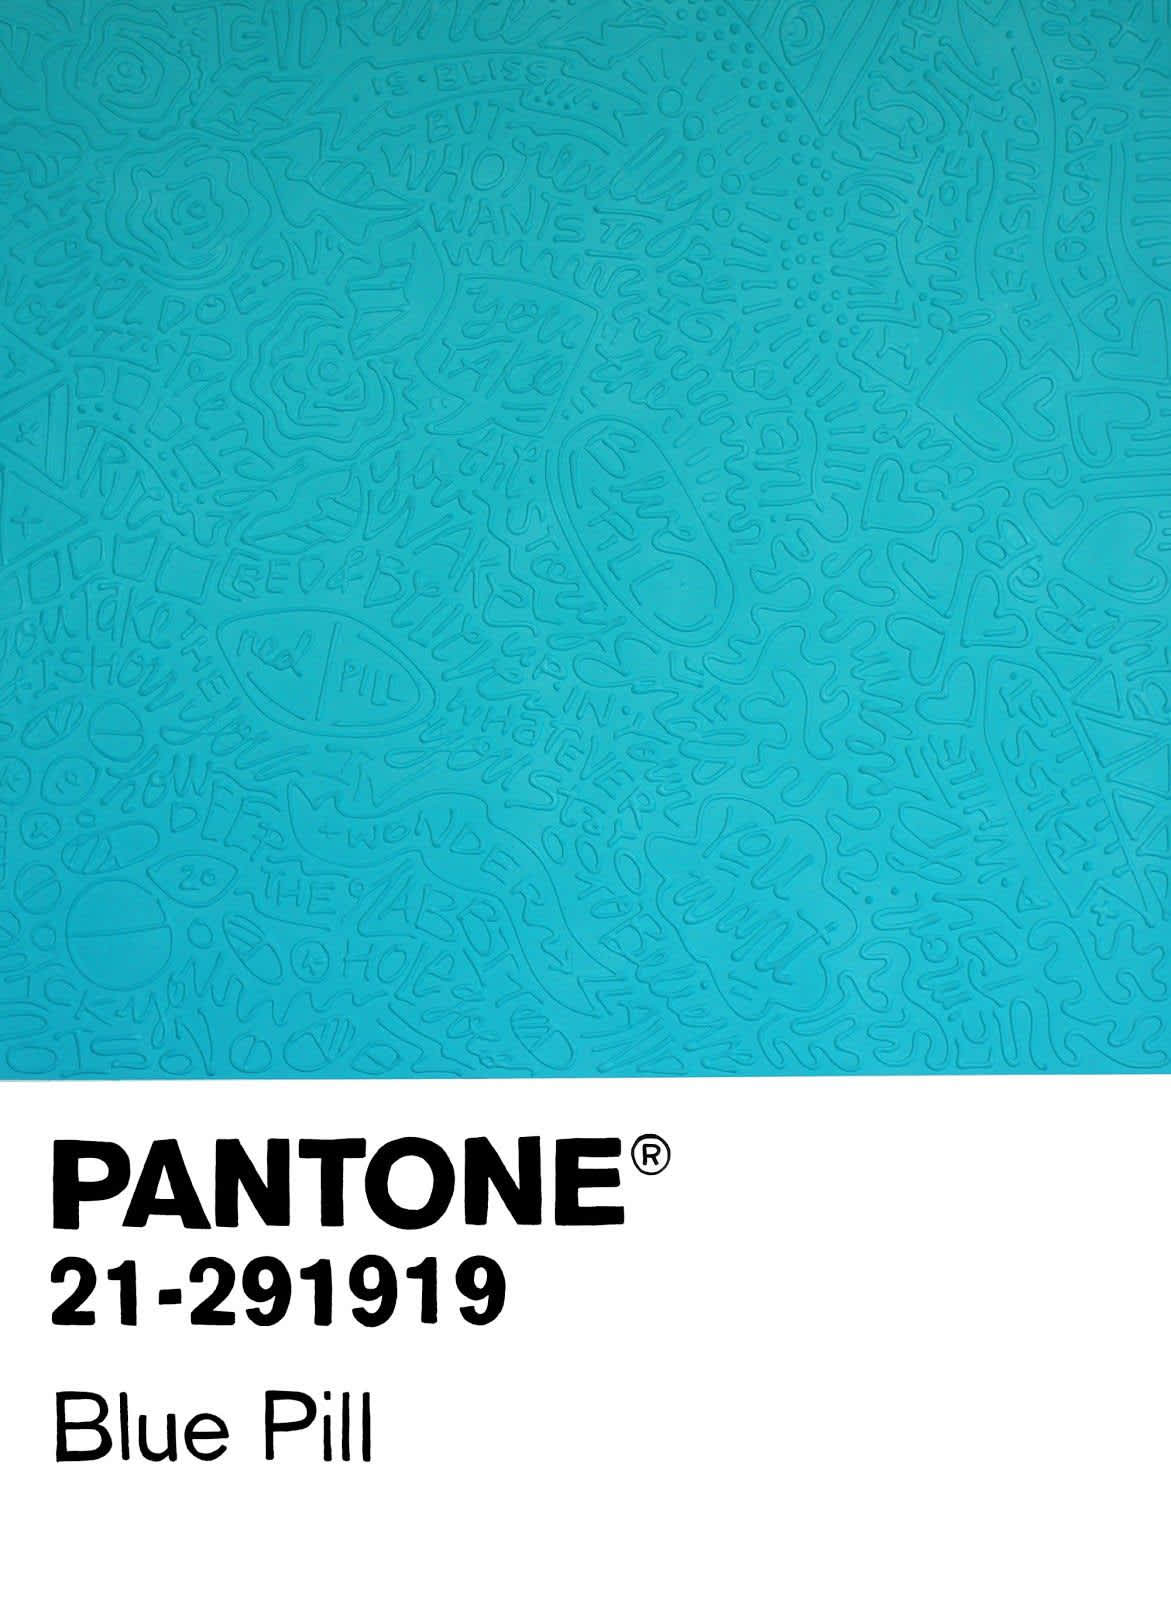 Cayla Birk Birktone Series: Blue Pill (Pantone 21-291919) Acrylic Spray Paint and Silicone on Canvas